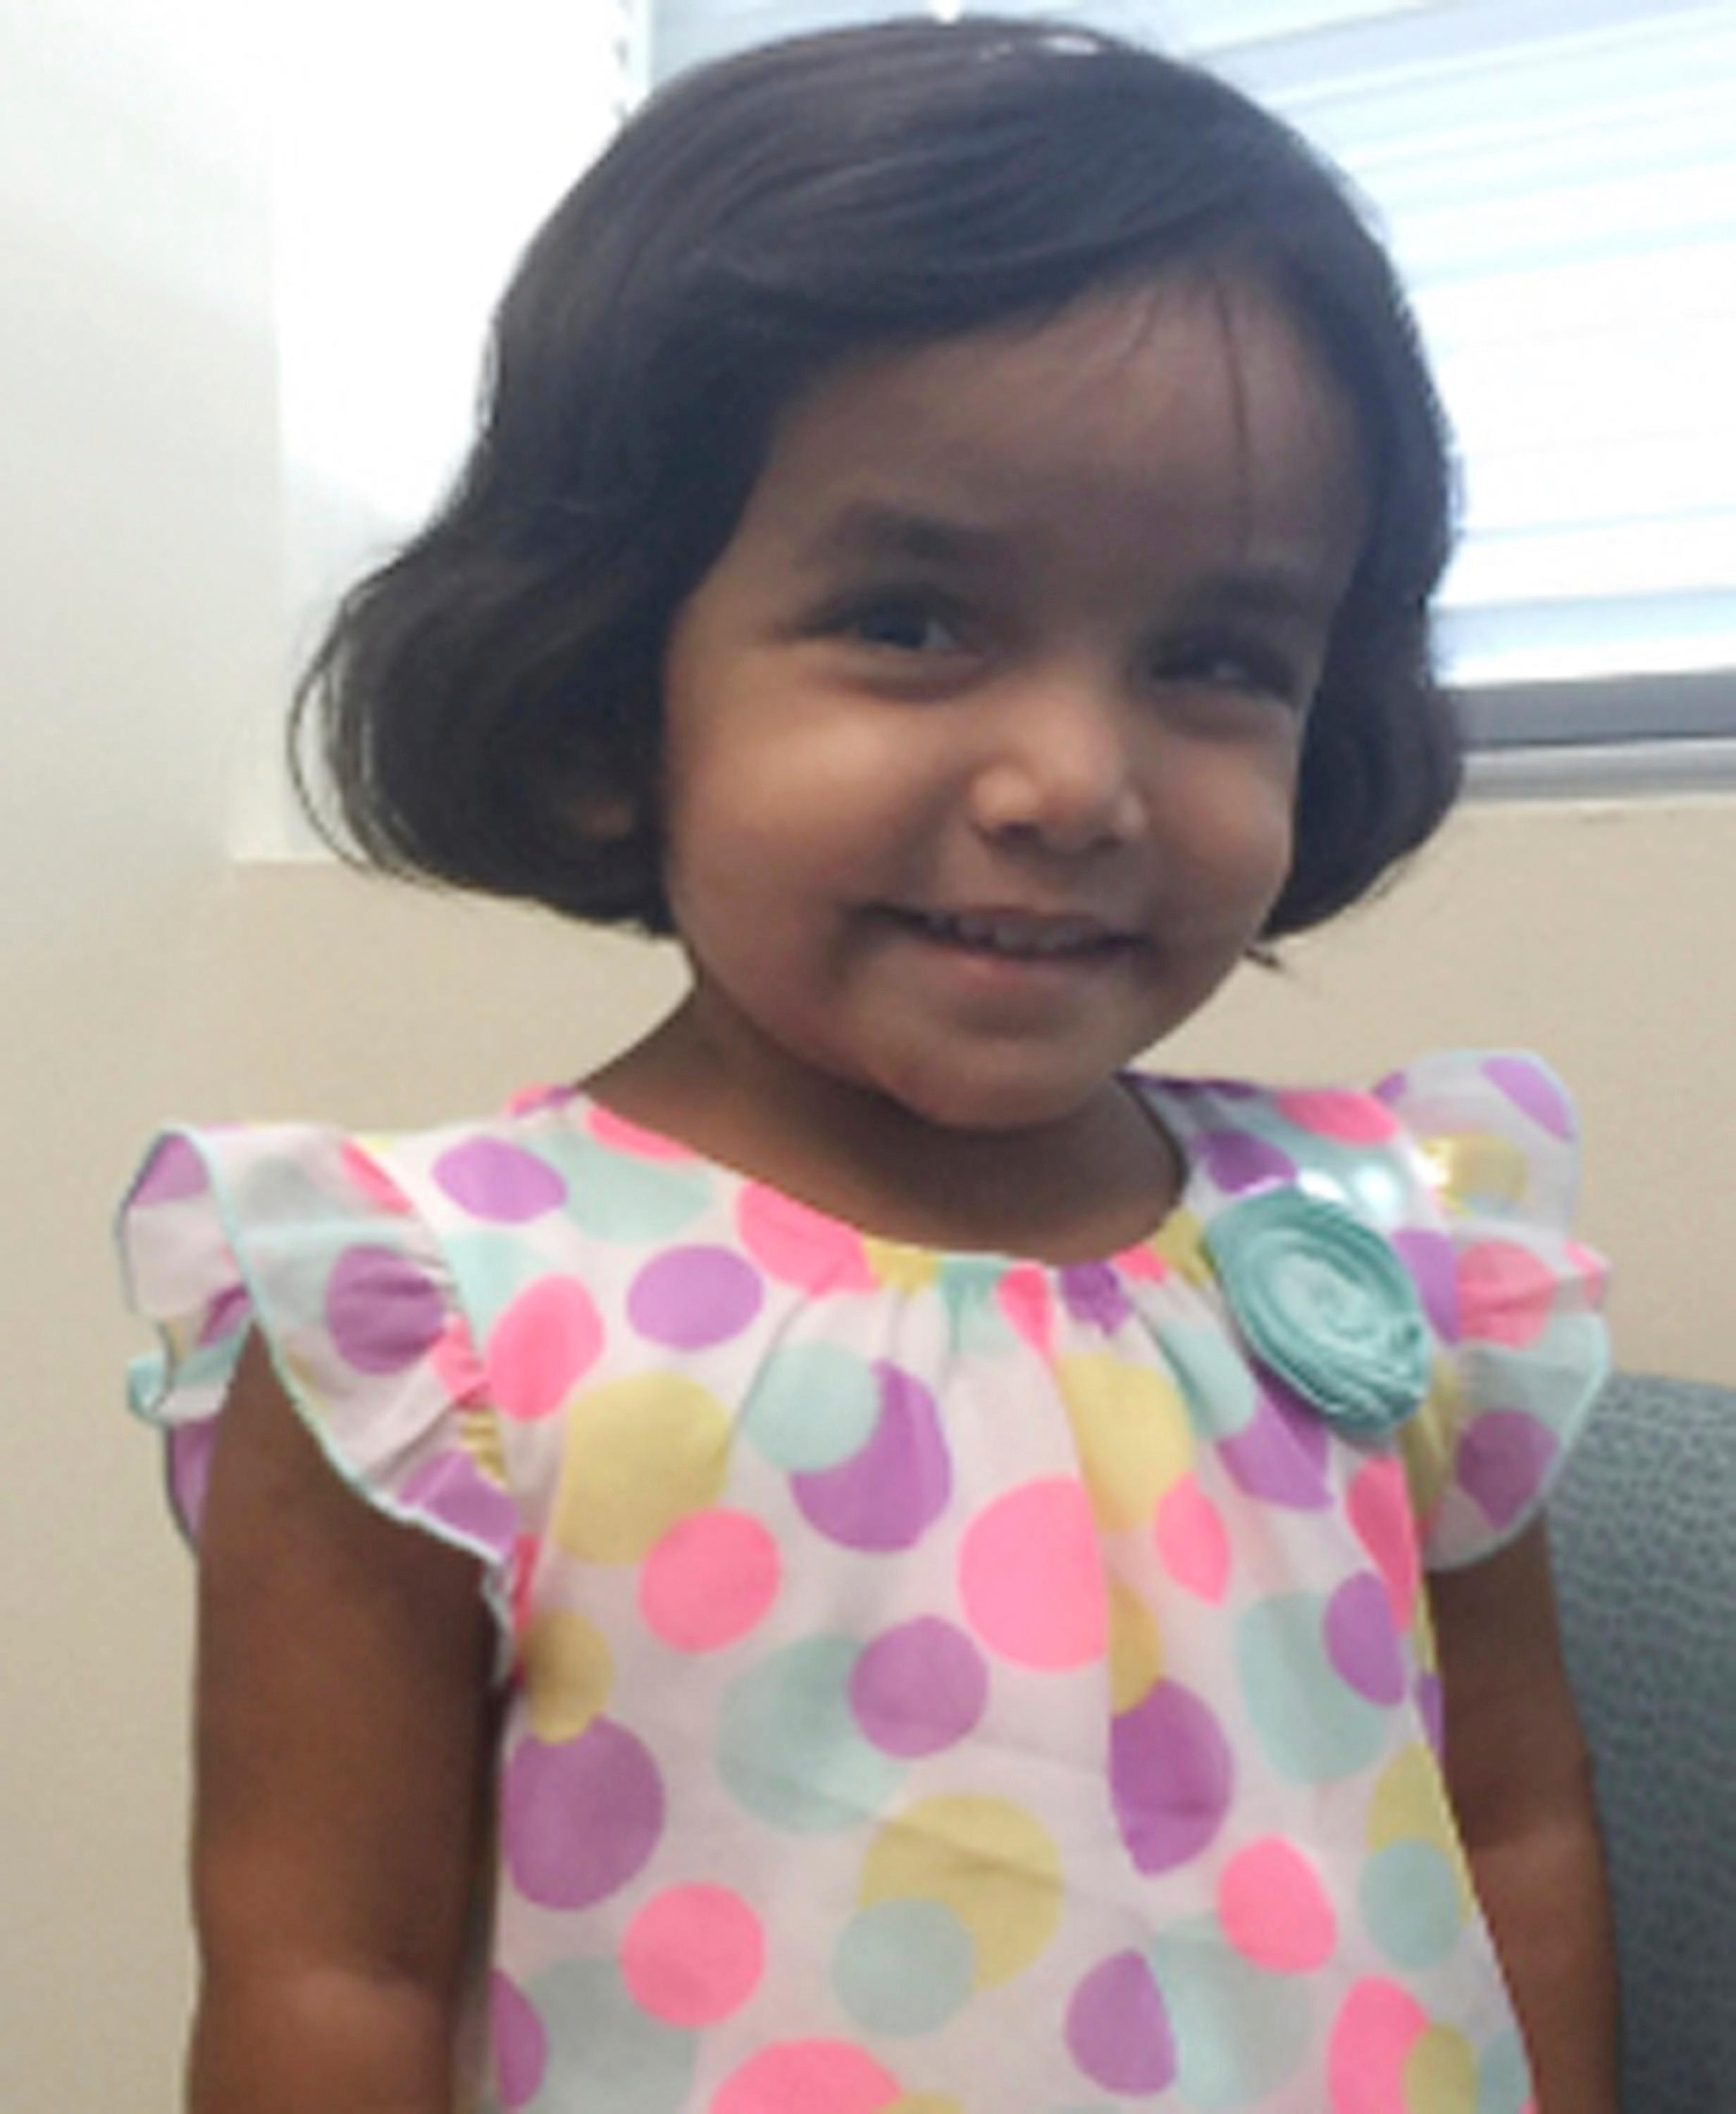 FILE- This undated photo provided by the Richardson Texas Police Department shows 3-year-old Sherin Mathews. (Richardson Texas Police Department via AP)